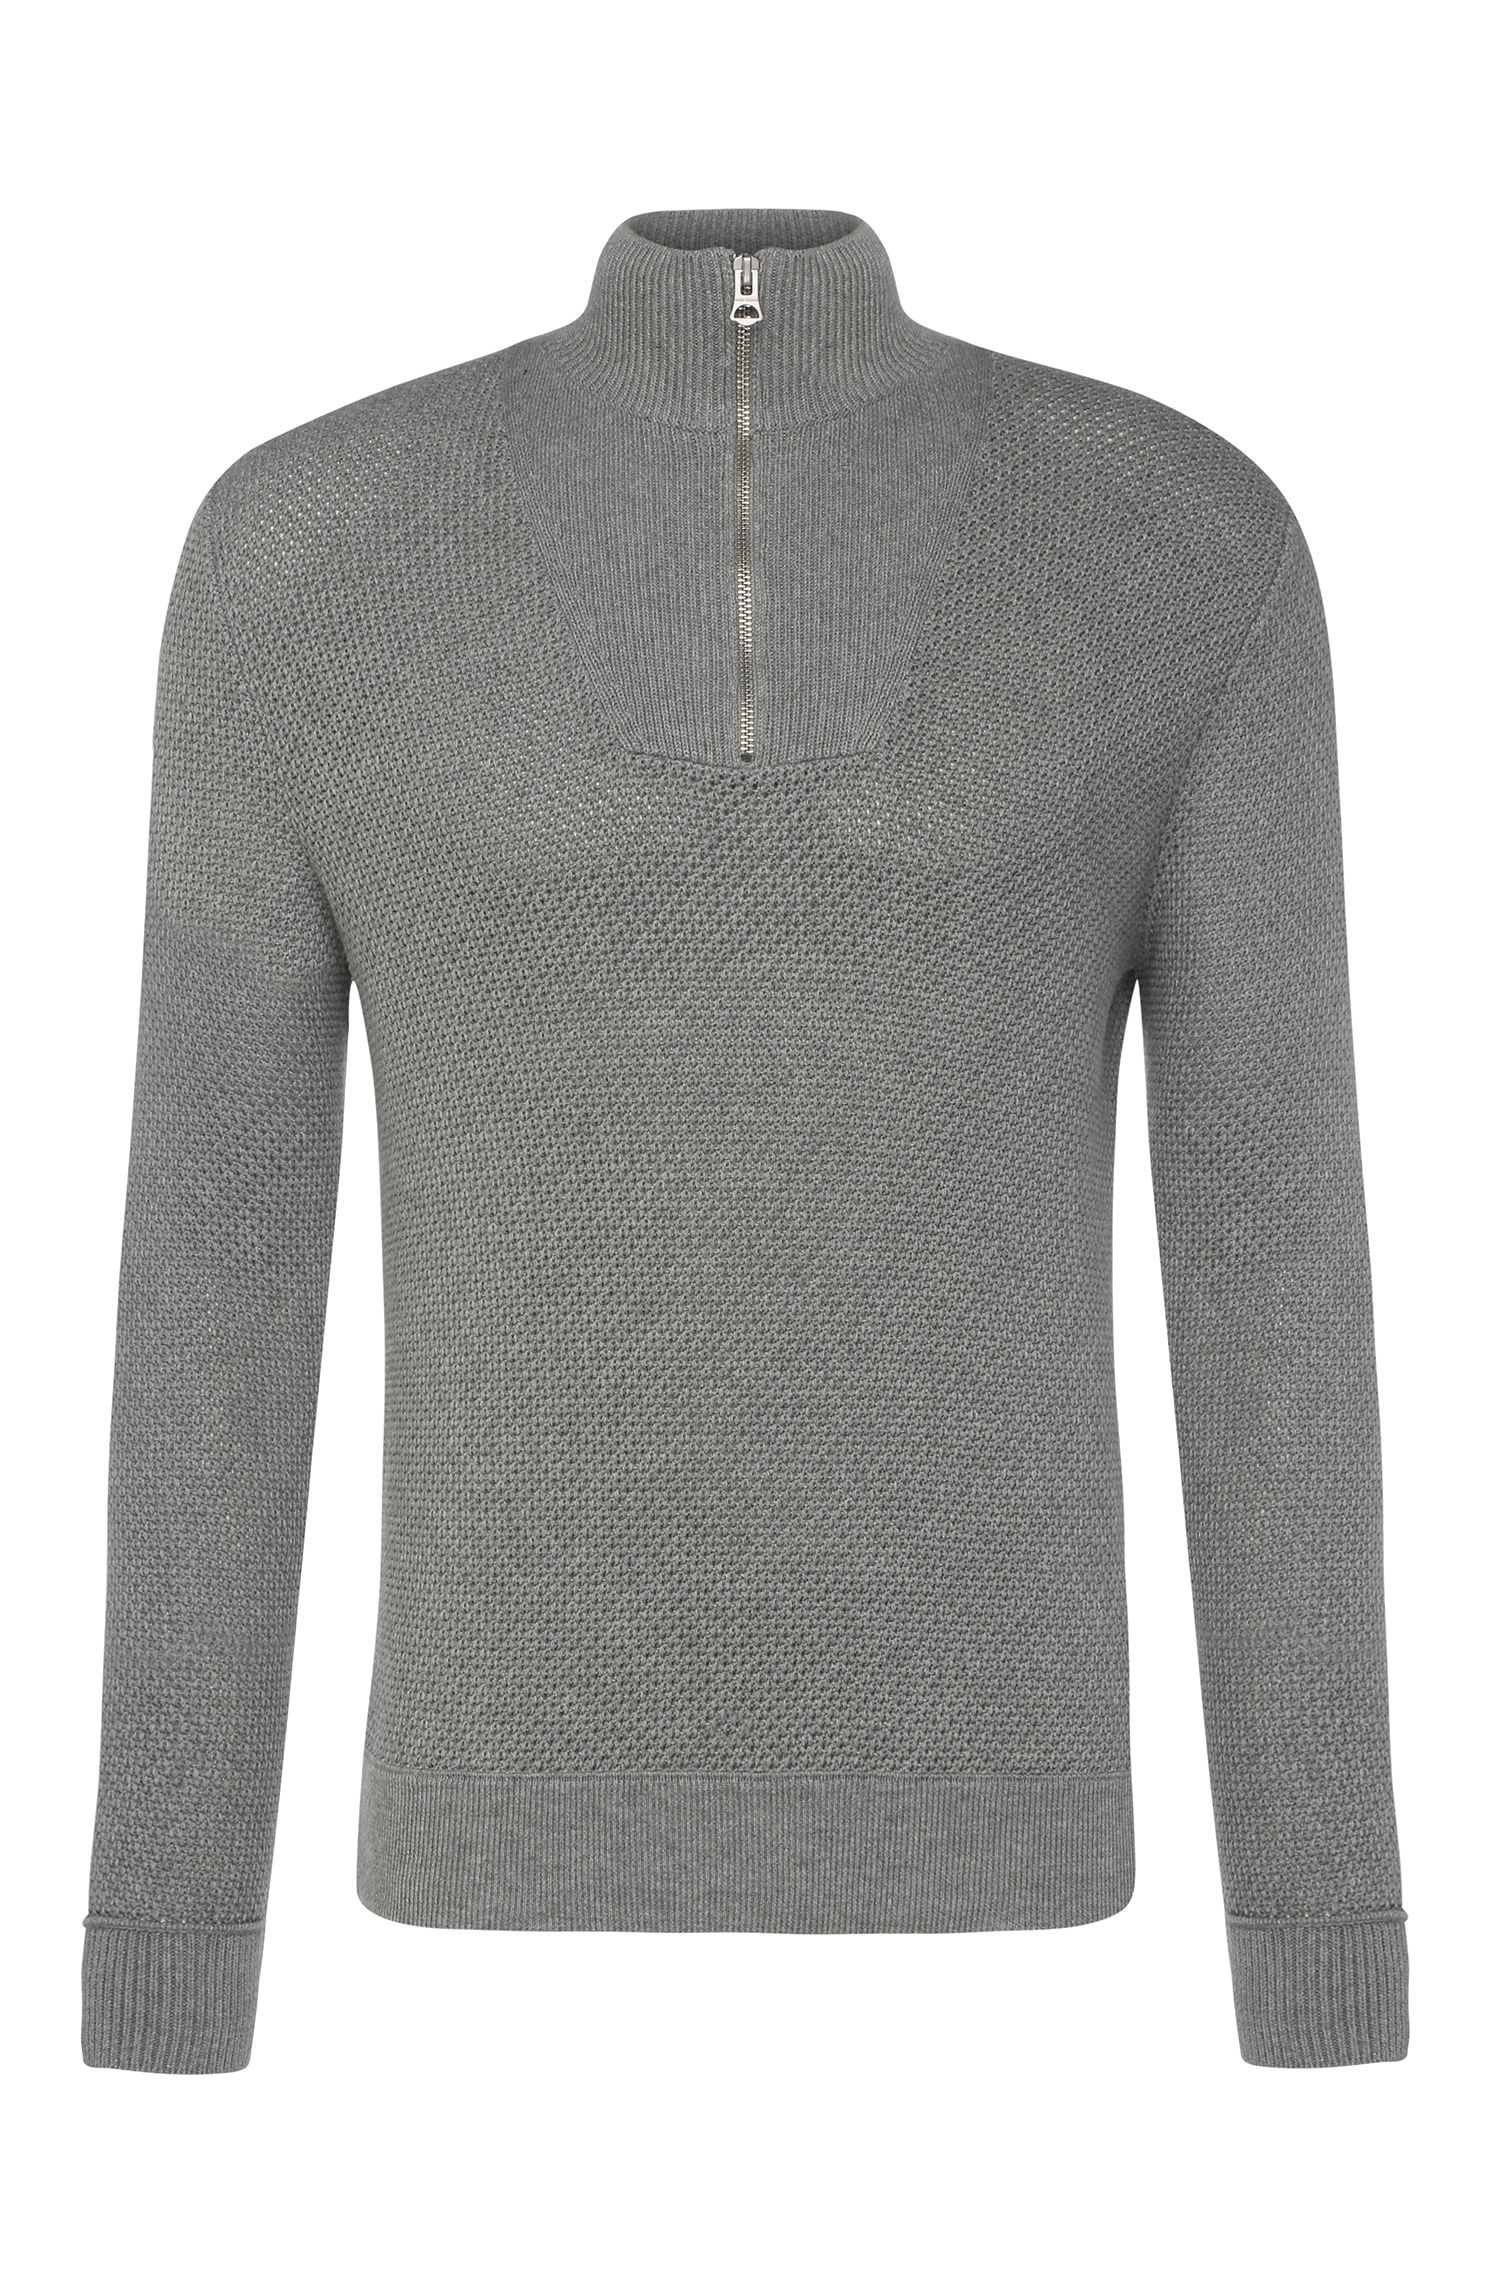 Slim-fit knit sweater in cotton: 'Artric'